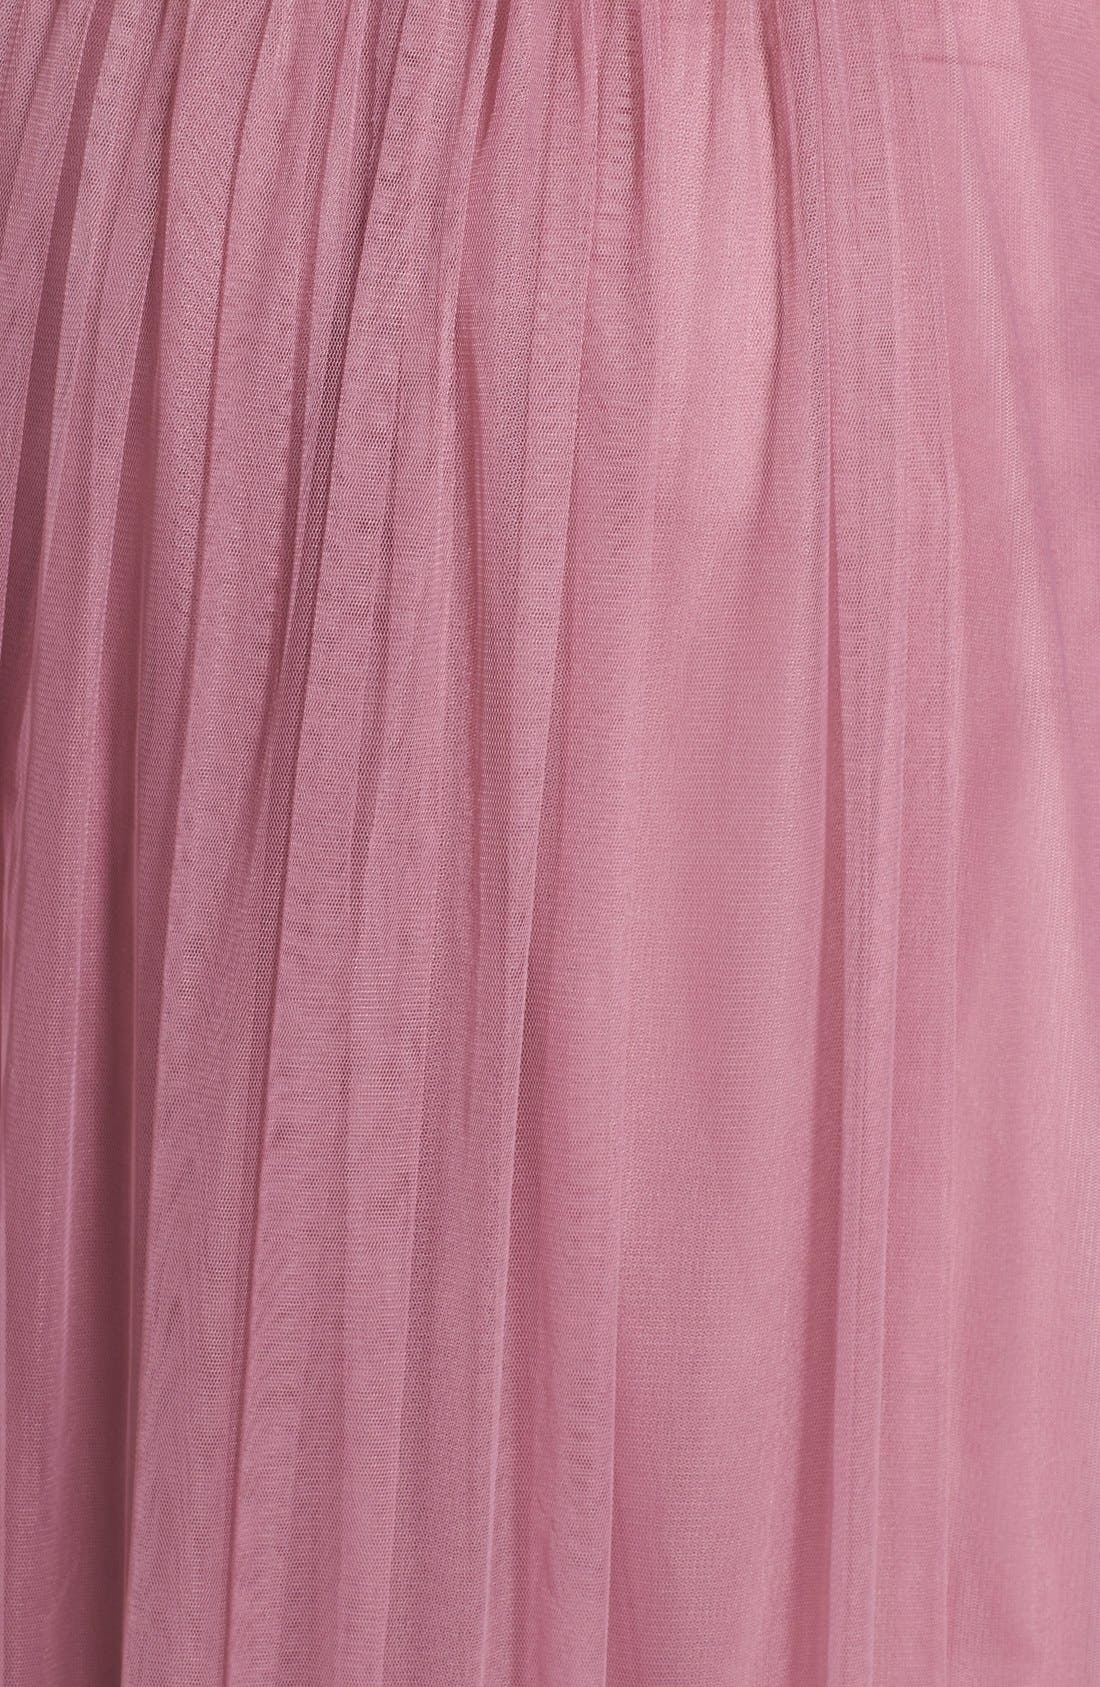 Annabelle Convertible Tulle Column Dress,                             Alternate thumbnail 58, color,